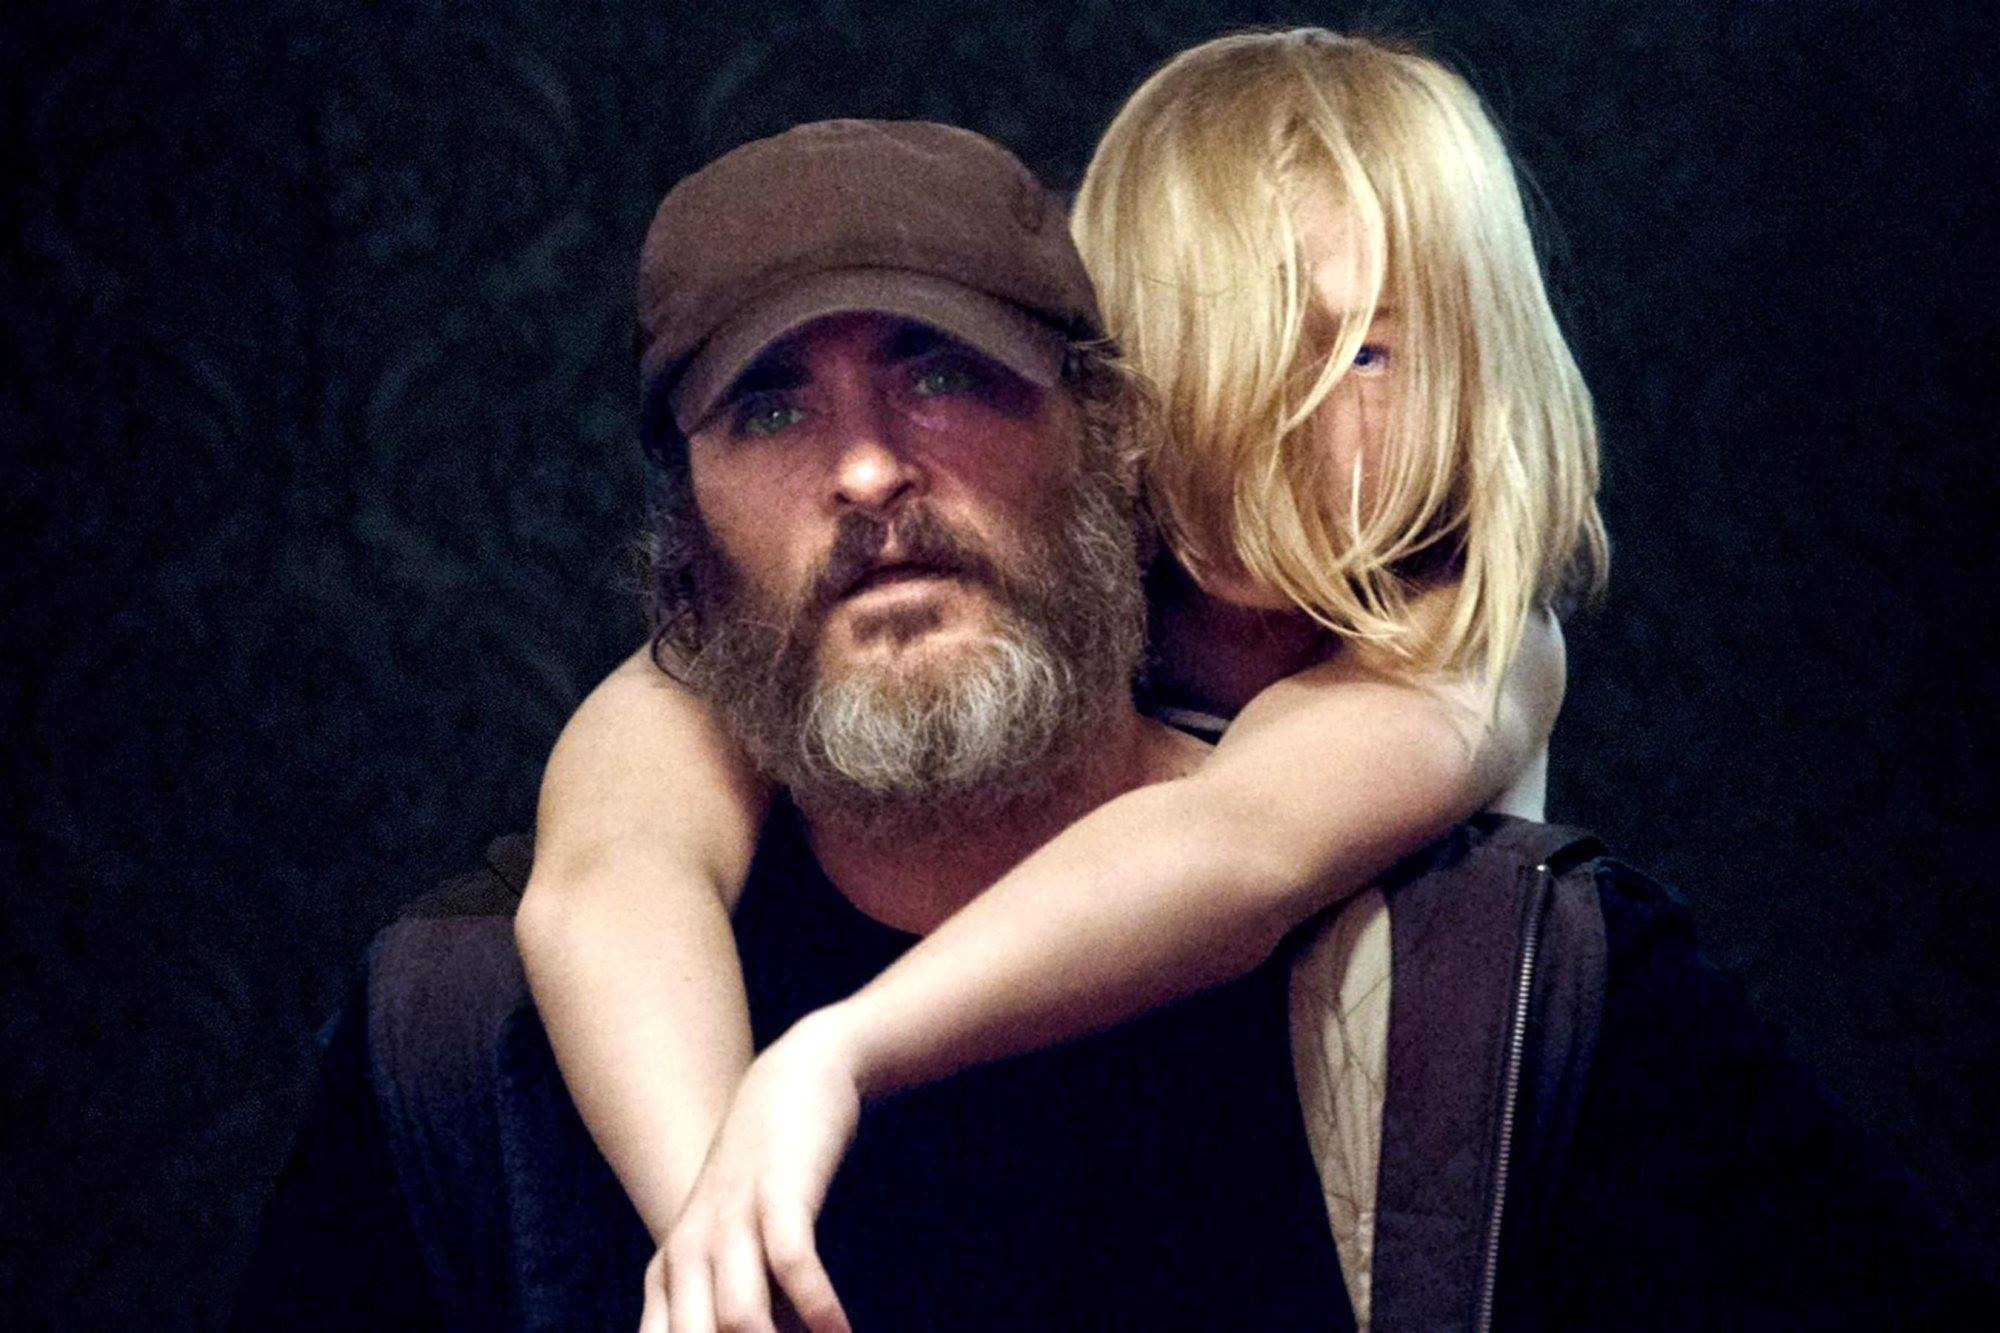 18 01 11 You were never really here